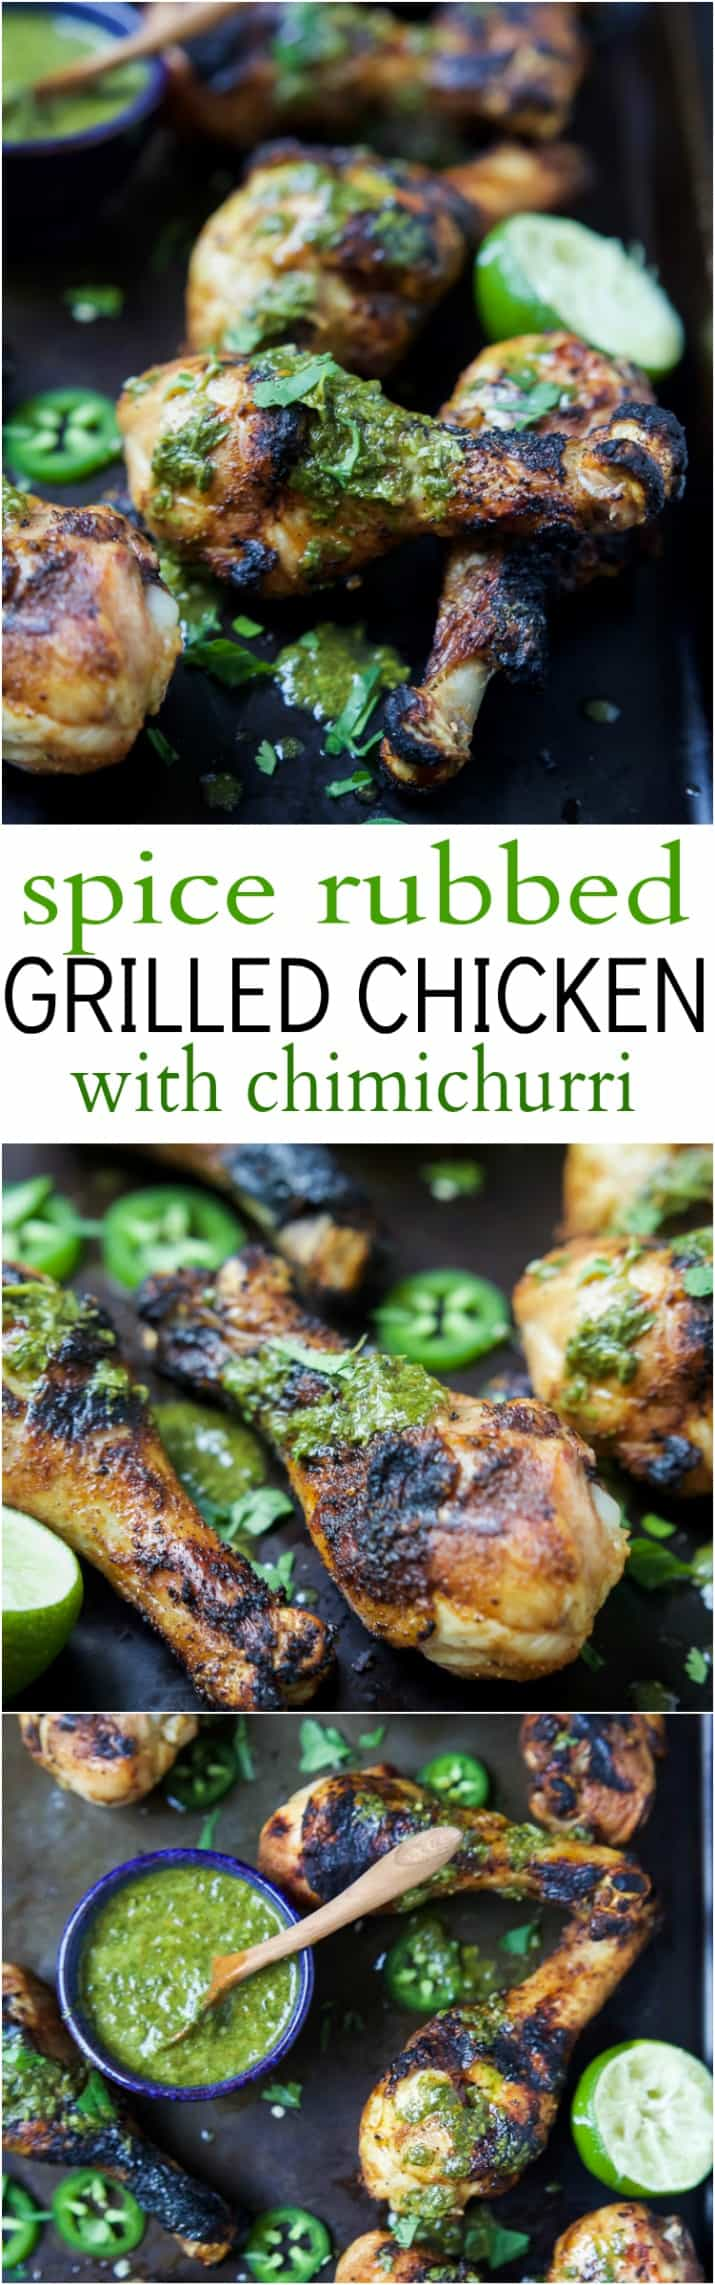 Grilled chicken recipes spice rub